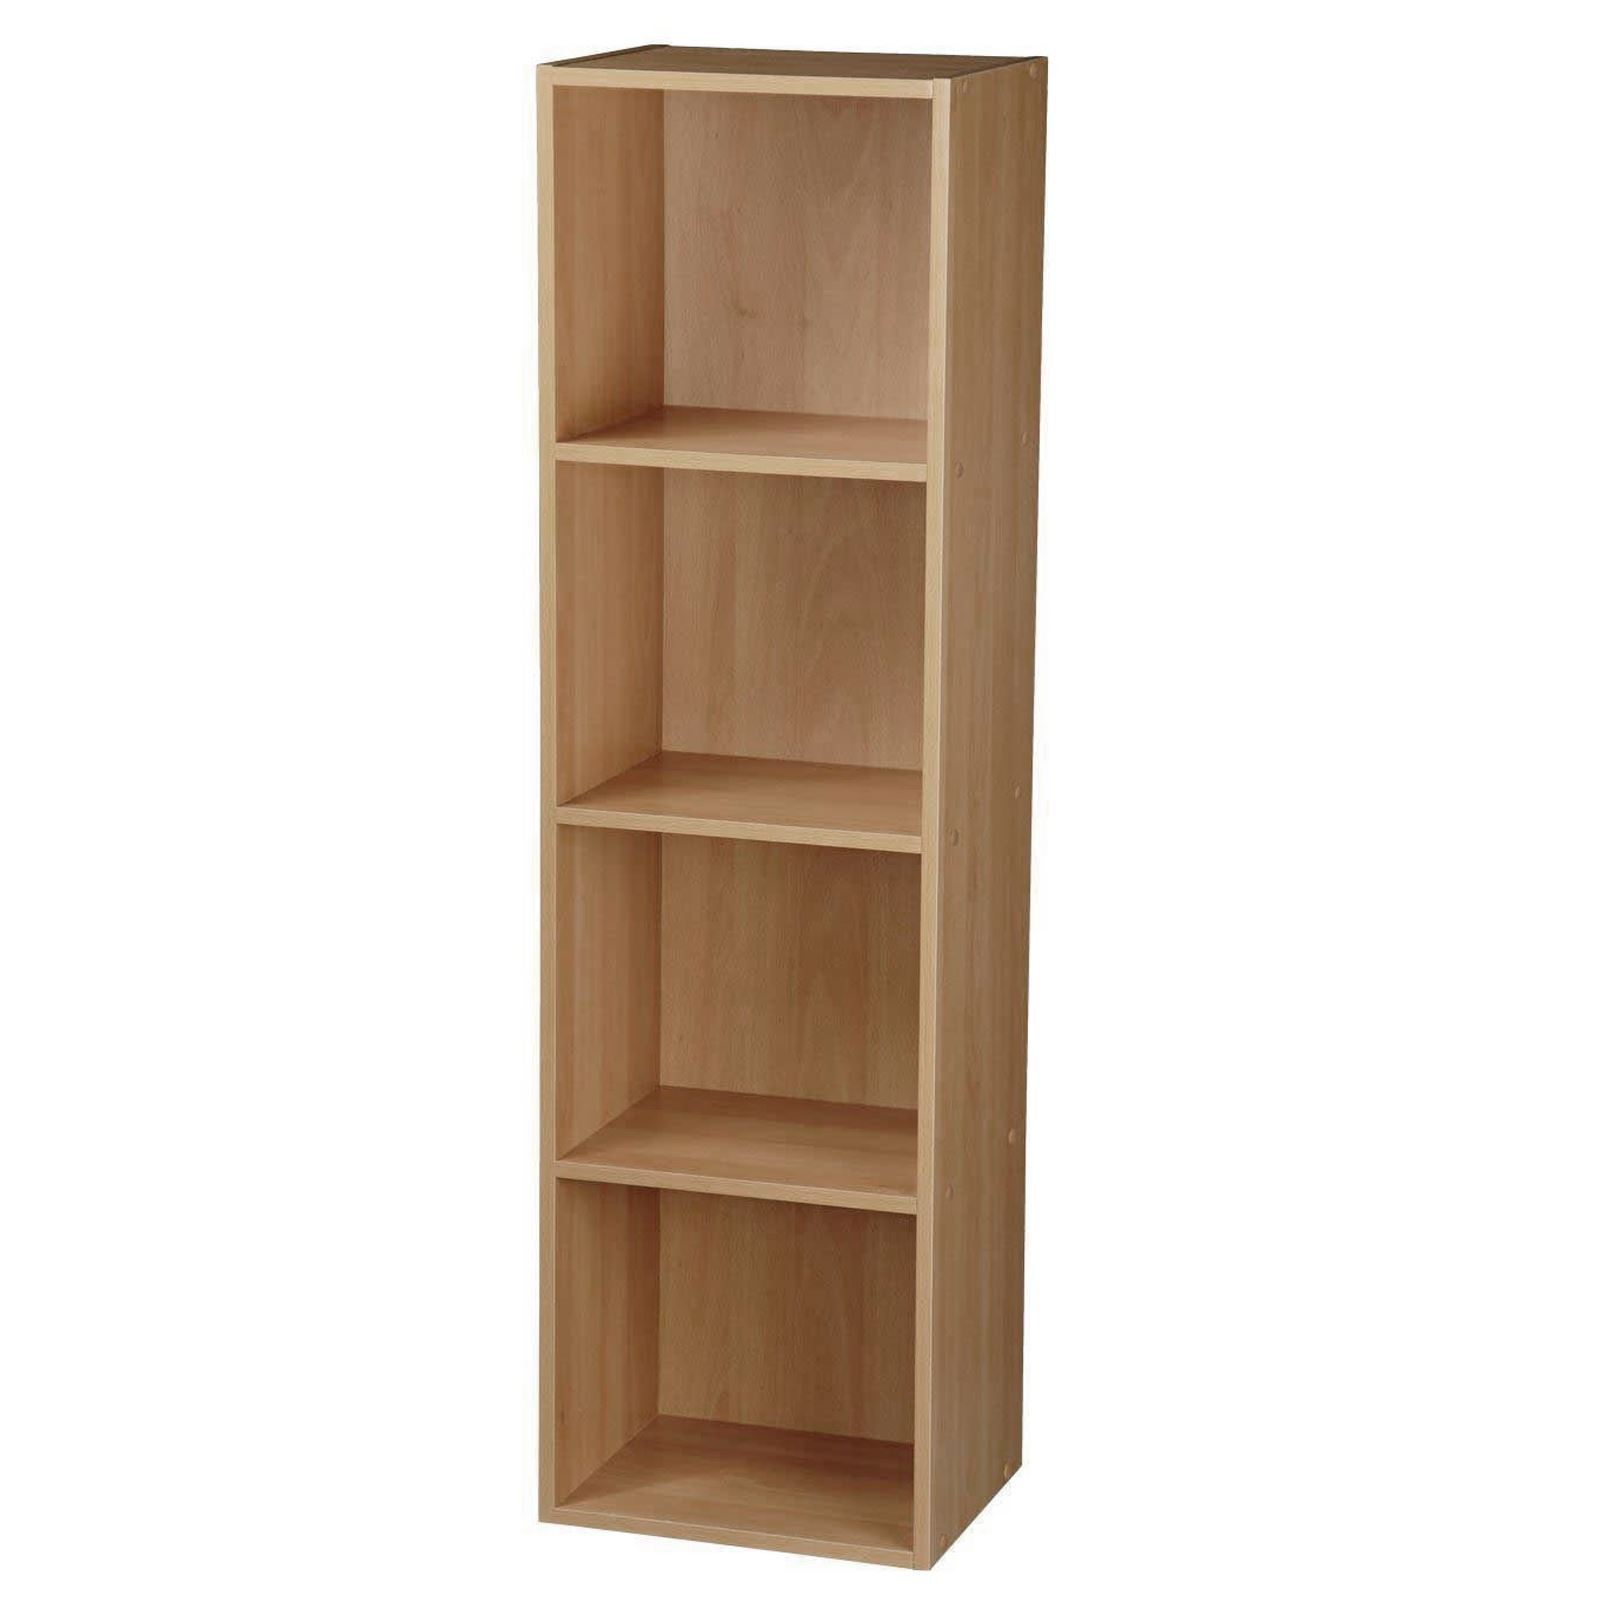 Wooden-Storage-Unit-Cube-2-3-4-Tier-Strong-Bookcase-Shelving-Home-Office-Display thumbnail 25